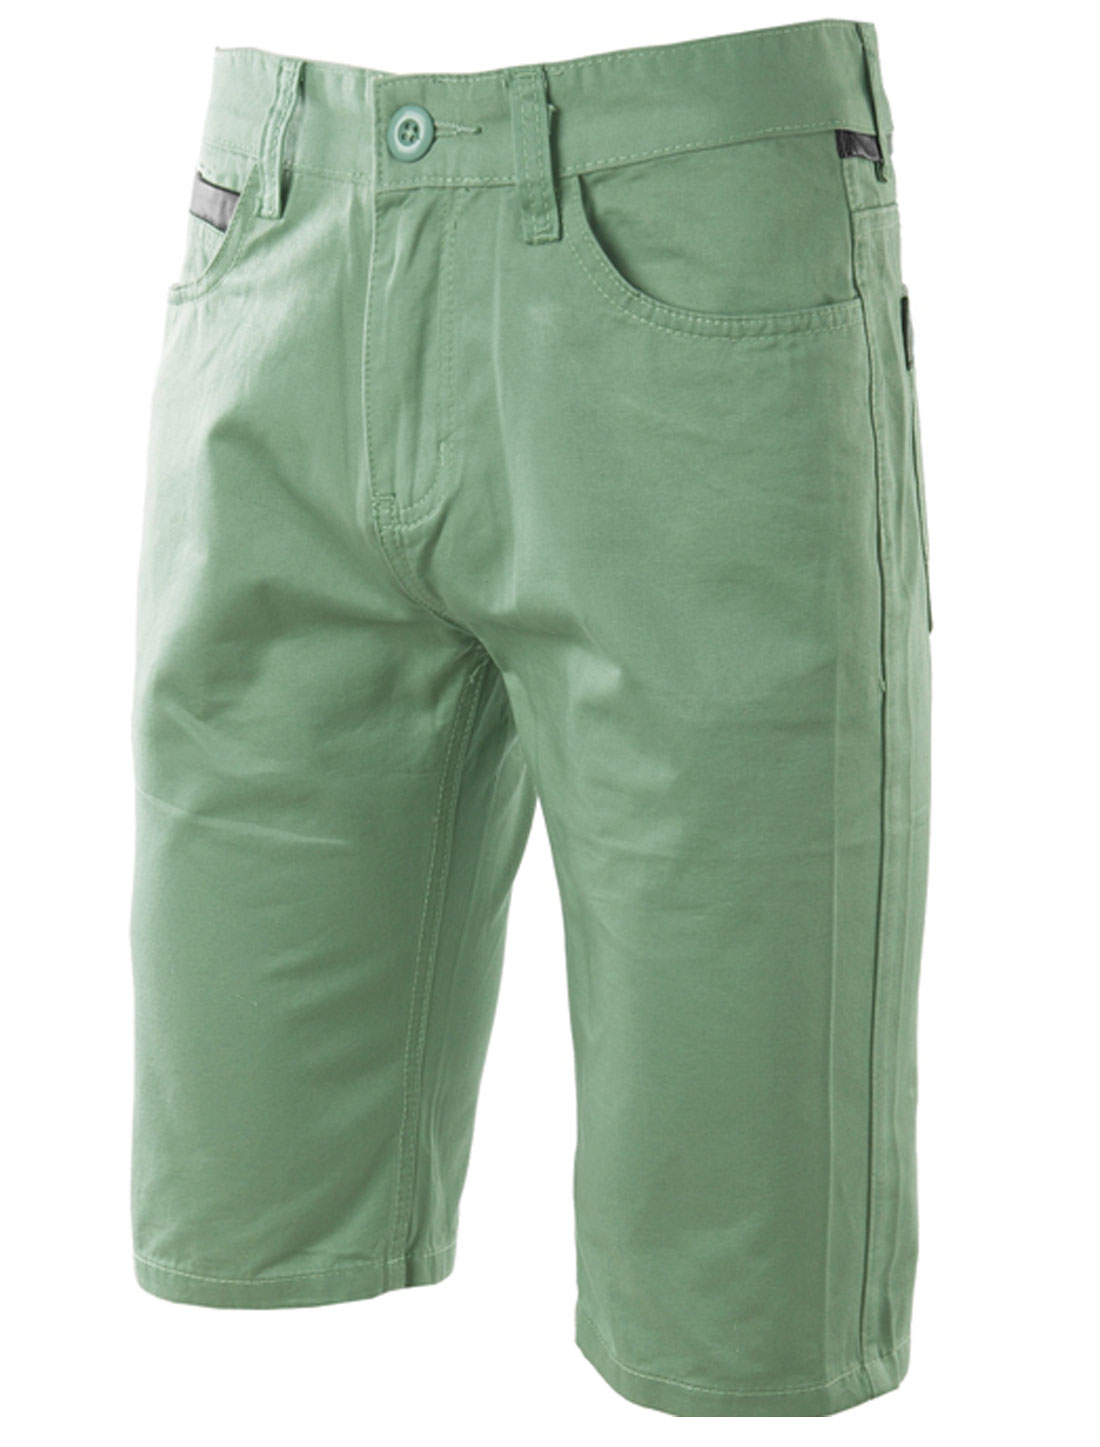 Man's Belt Loop Leather Trim Mid Rise Chino Shorts Pea Green W34